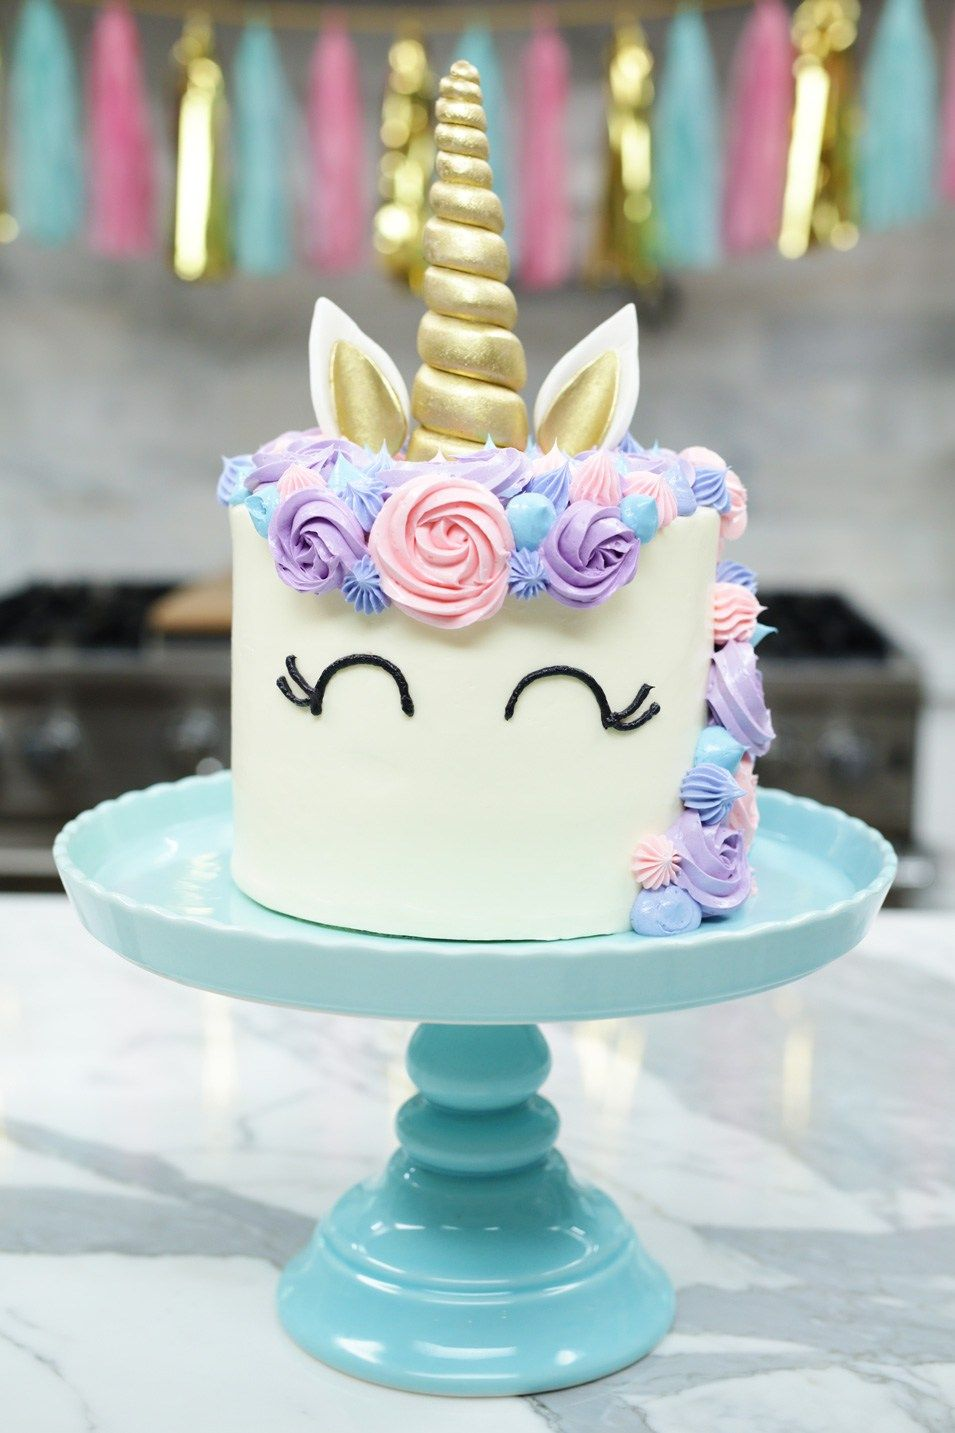 How To Make A Unicorn Cake Unicorns Cake And Recipes